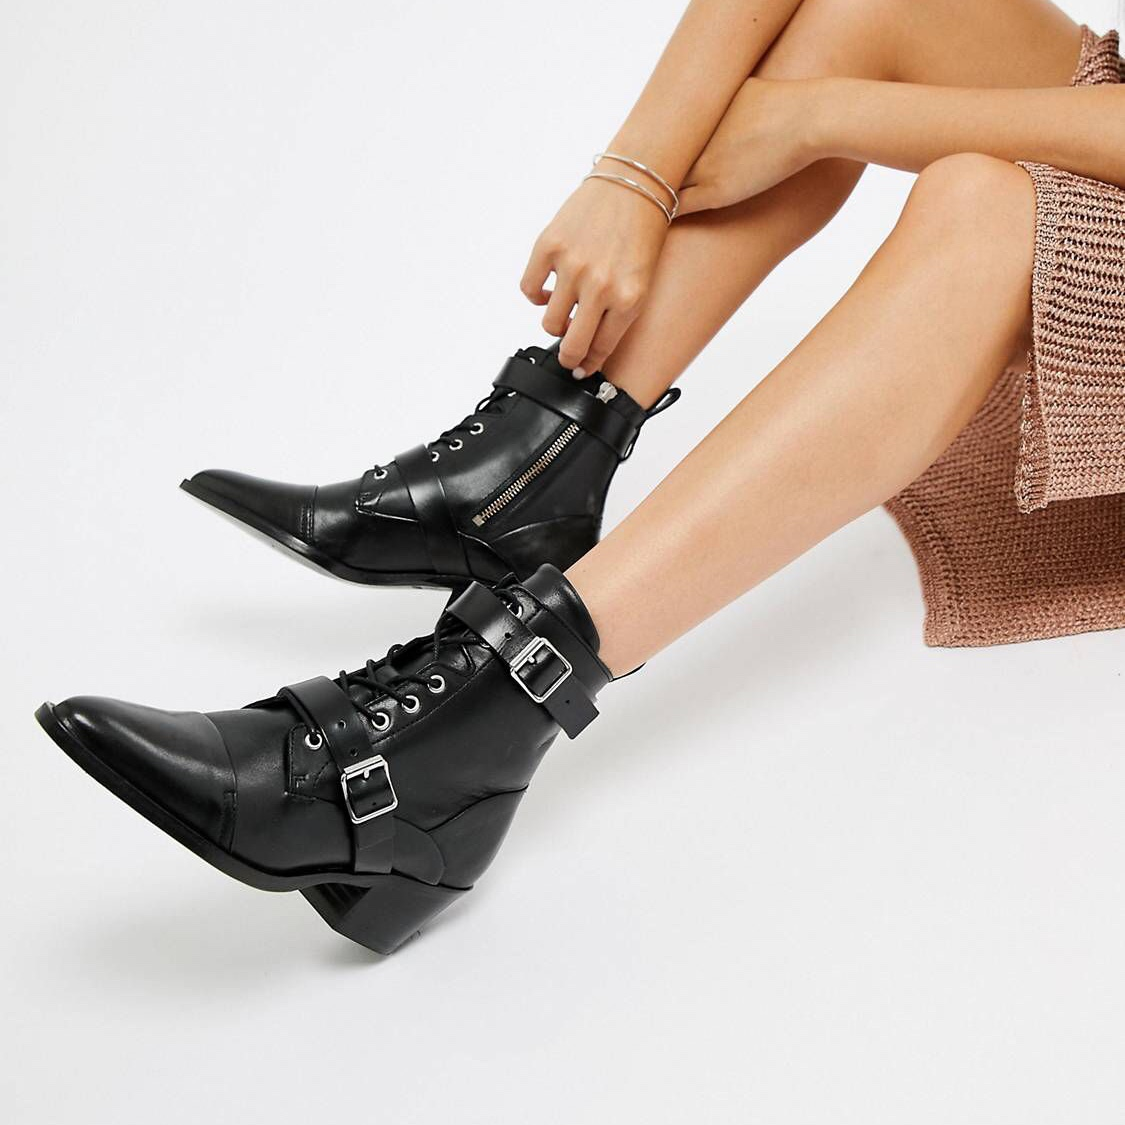 All Saints Lucie buckle boot Size 7